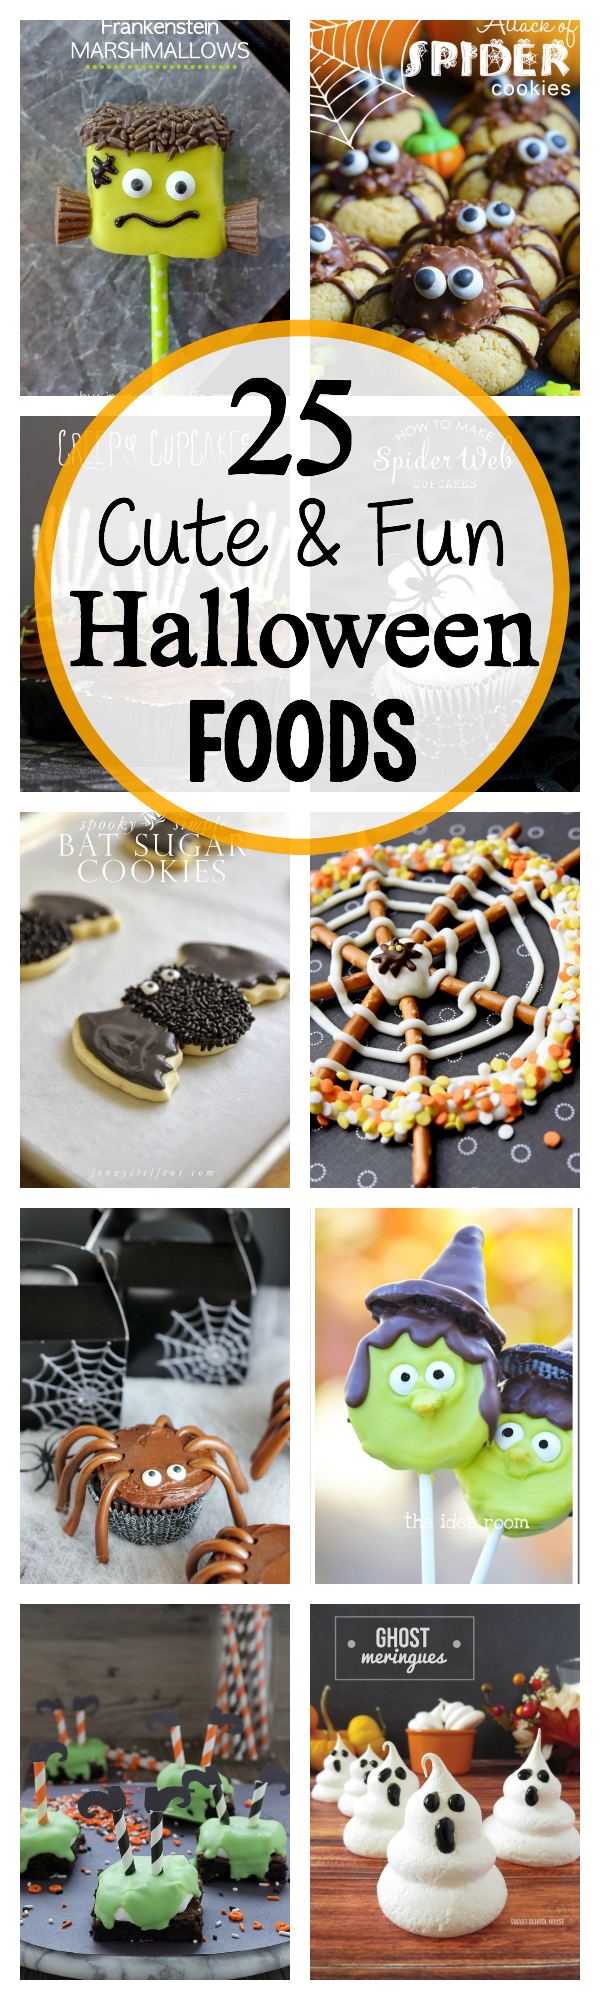 25 Cute and Fun Halloween Food Ideas